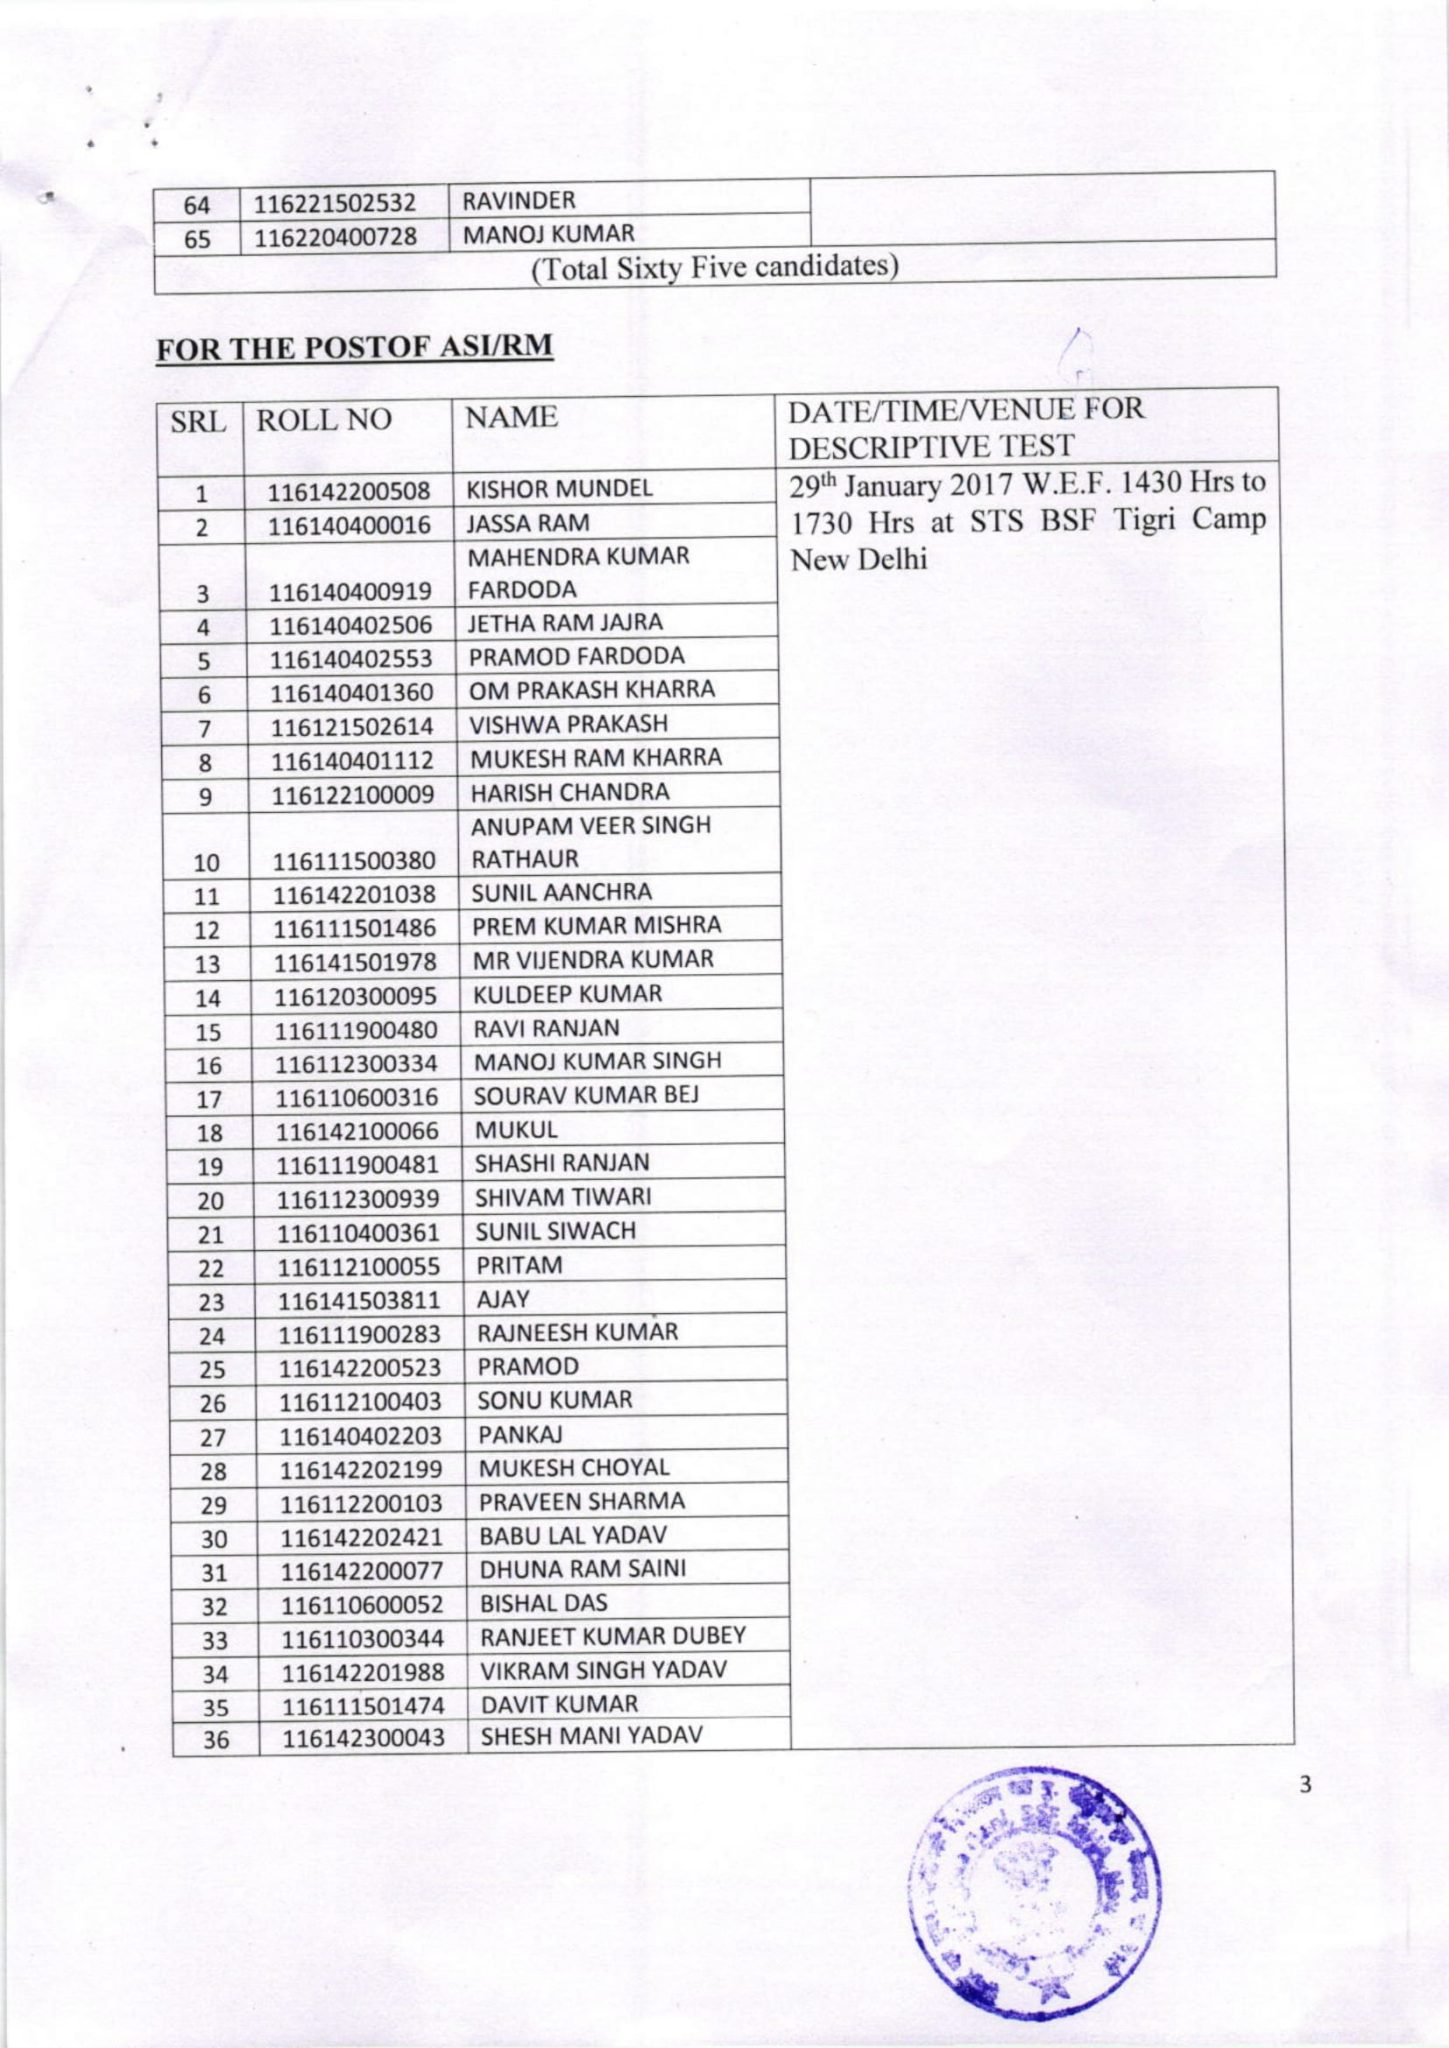 bsf asi rm result